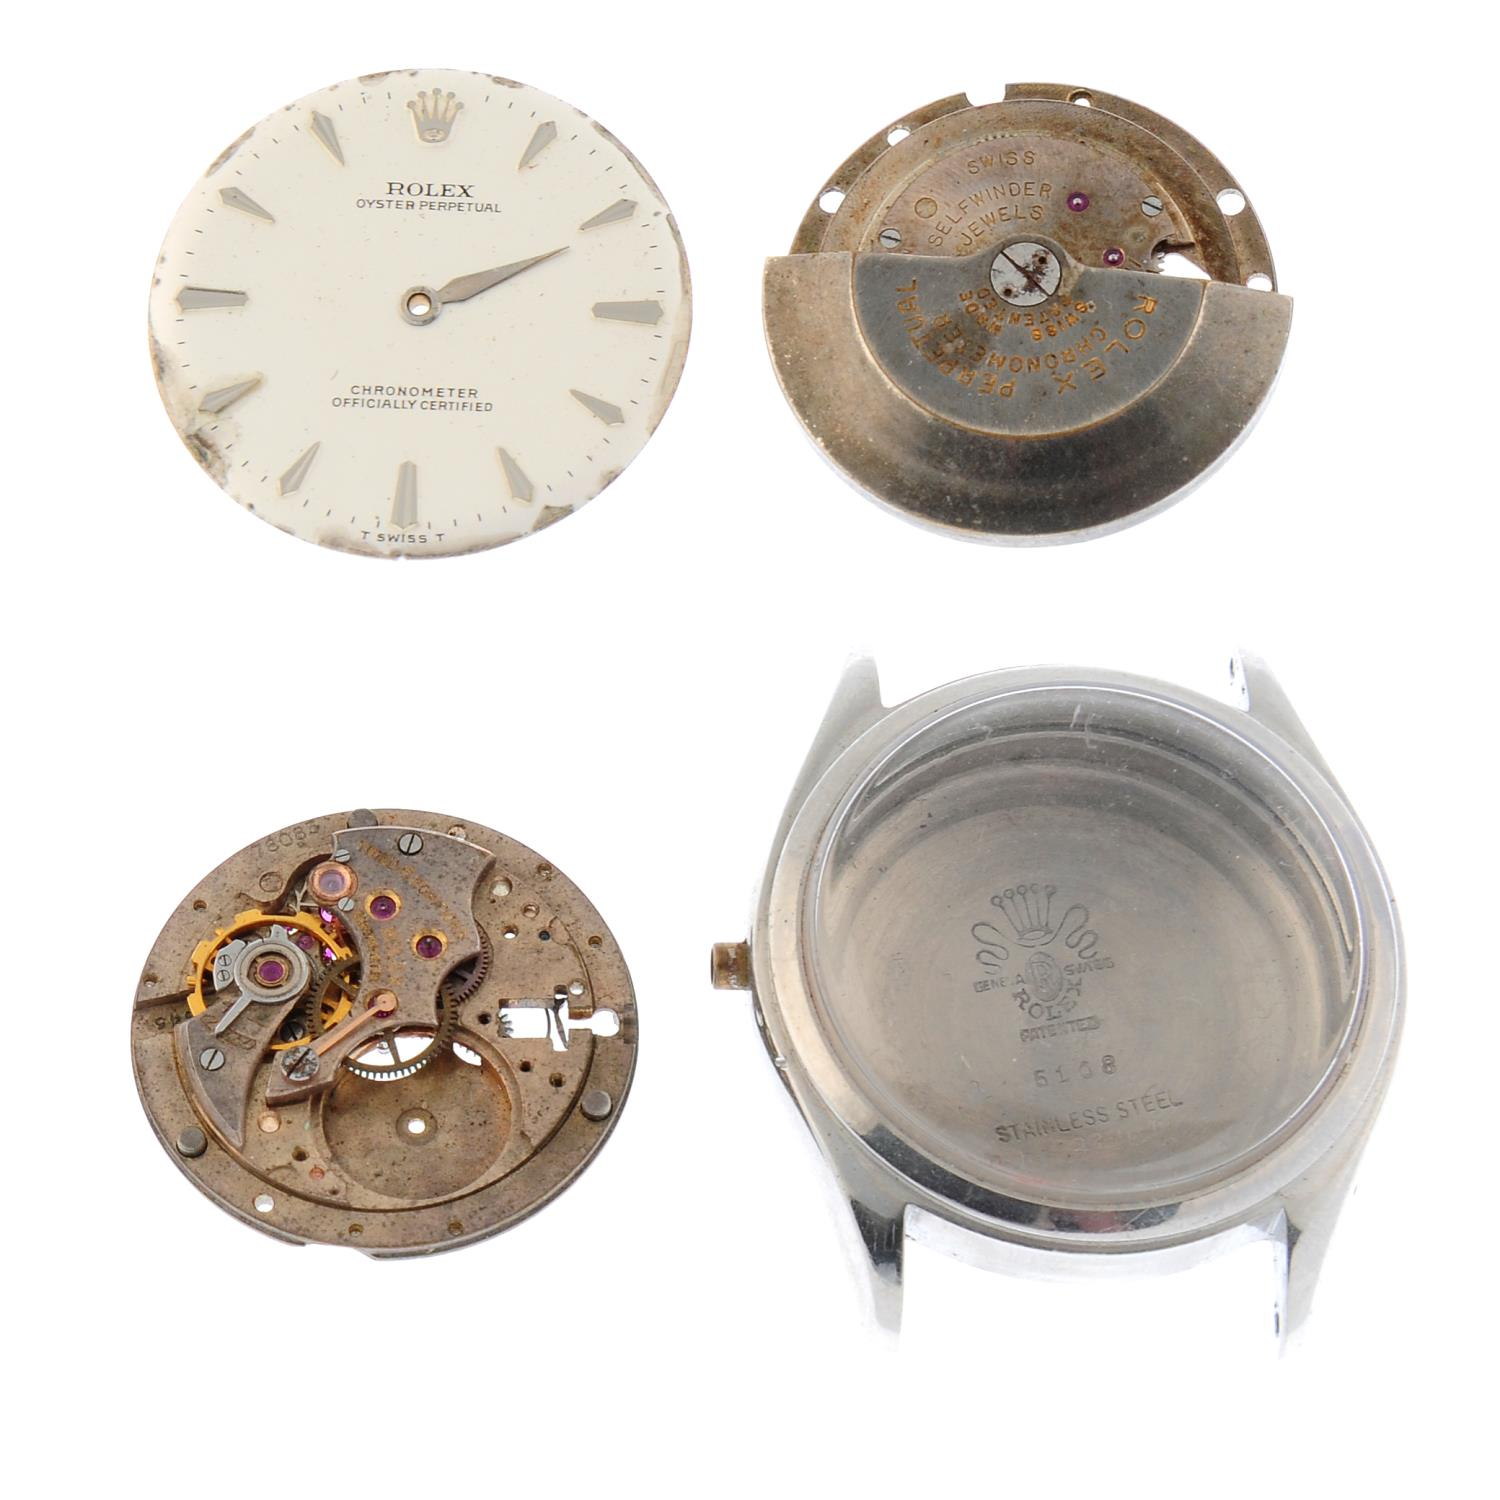 ROLEX - an Oyster Perpetual watch dial together with two incomplete signed Rolex movements and a